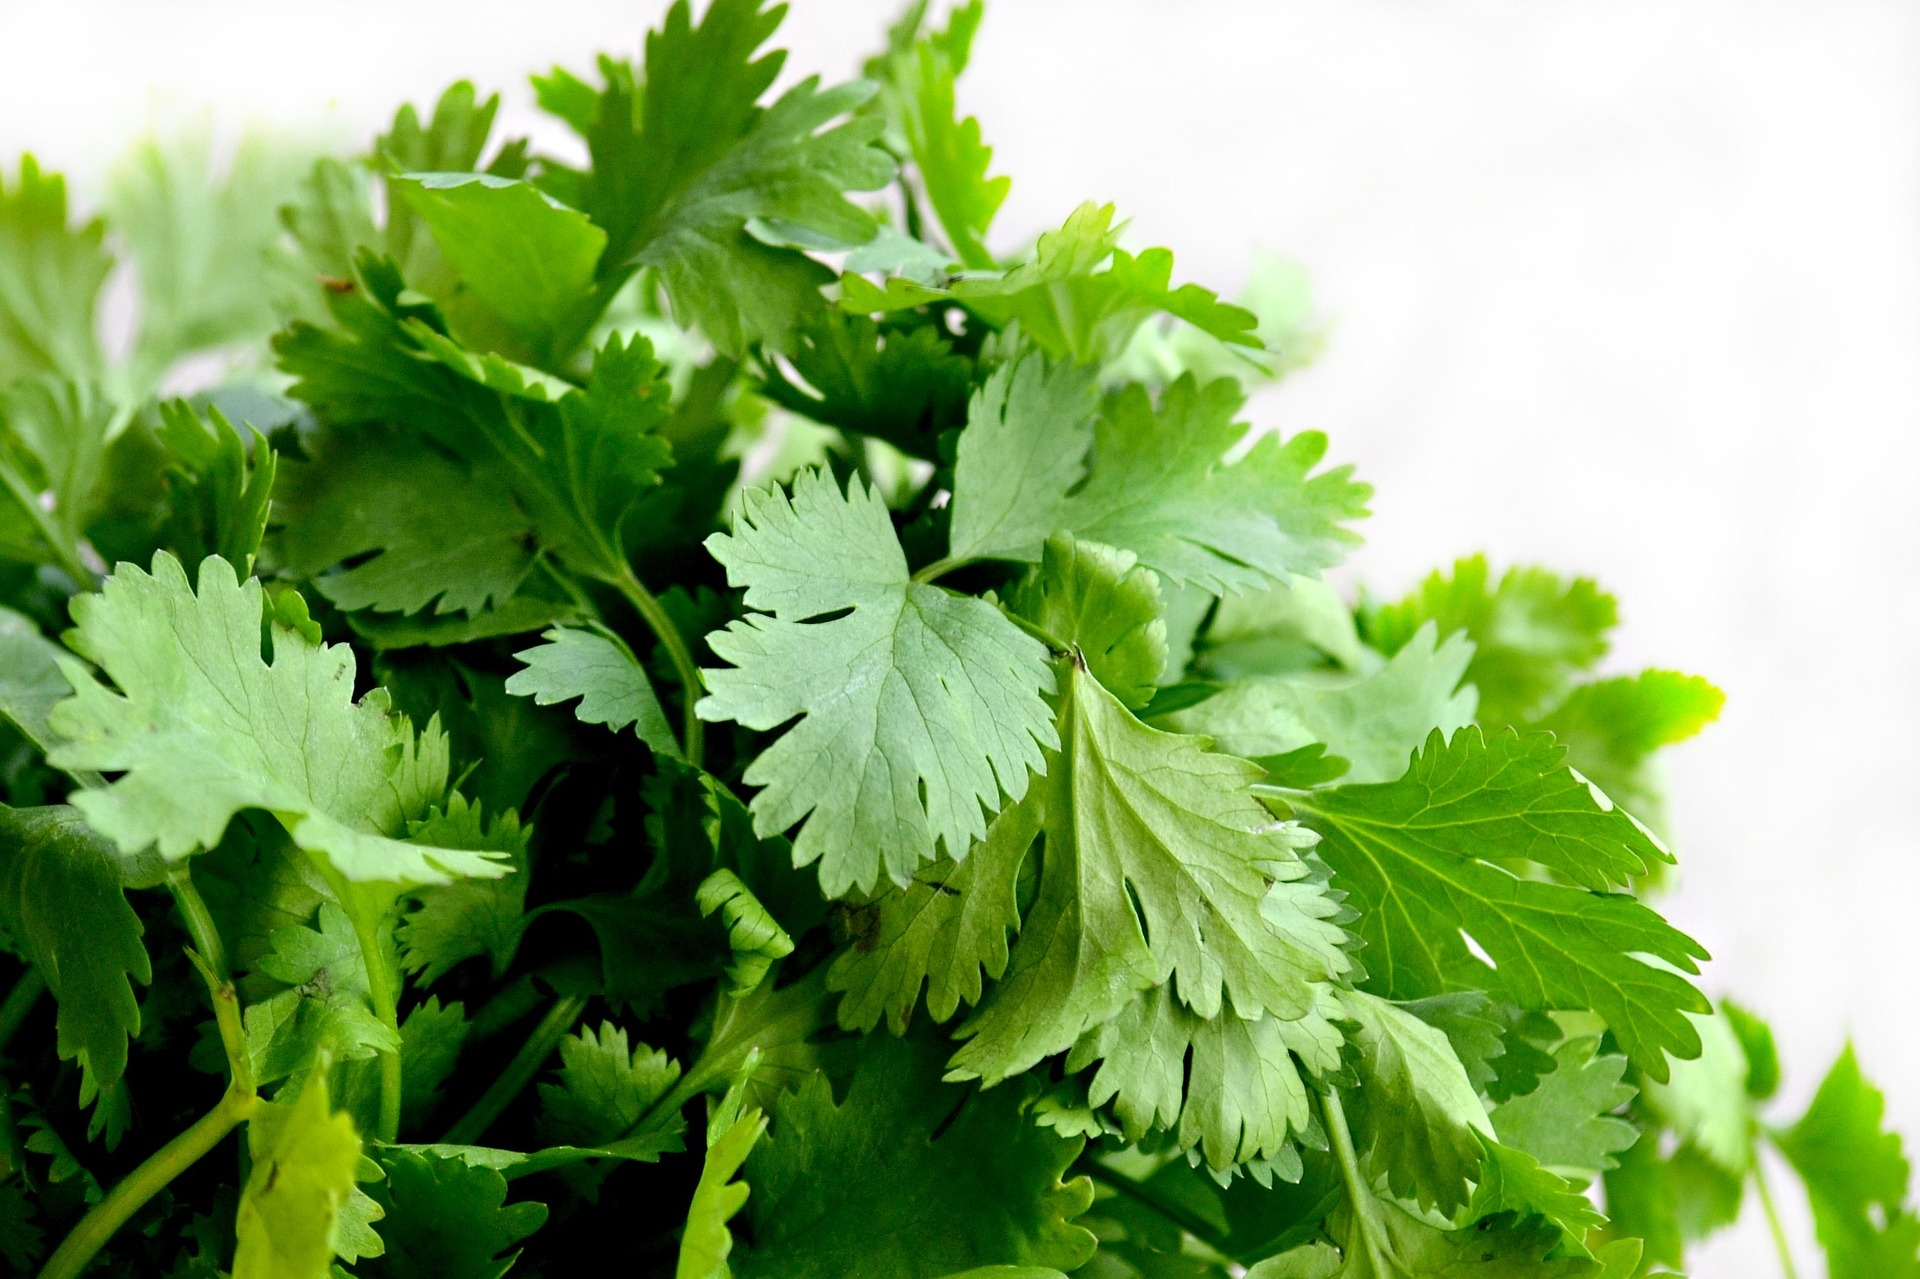 Coriander and Cilantro: Planting, Growing, and Harvesting Coriander and Cilantro | The Old Farmer's Almanac